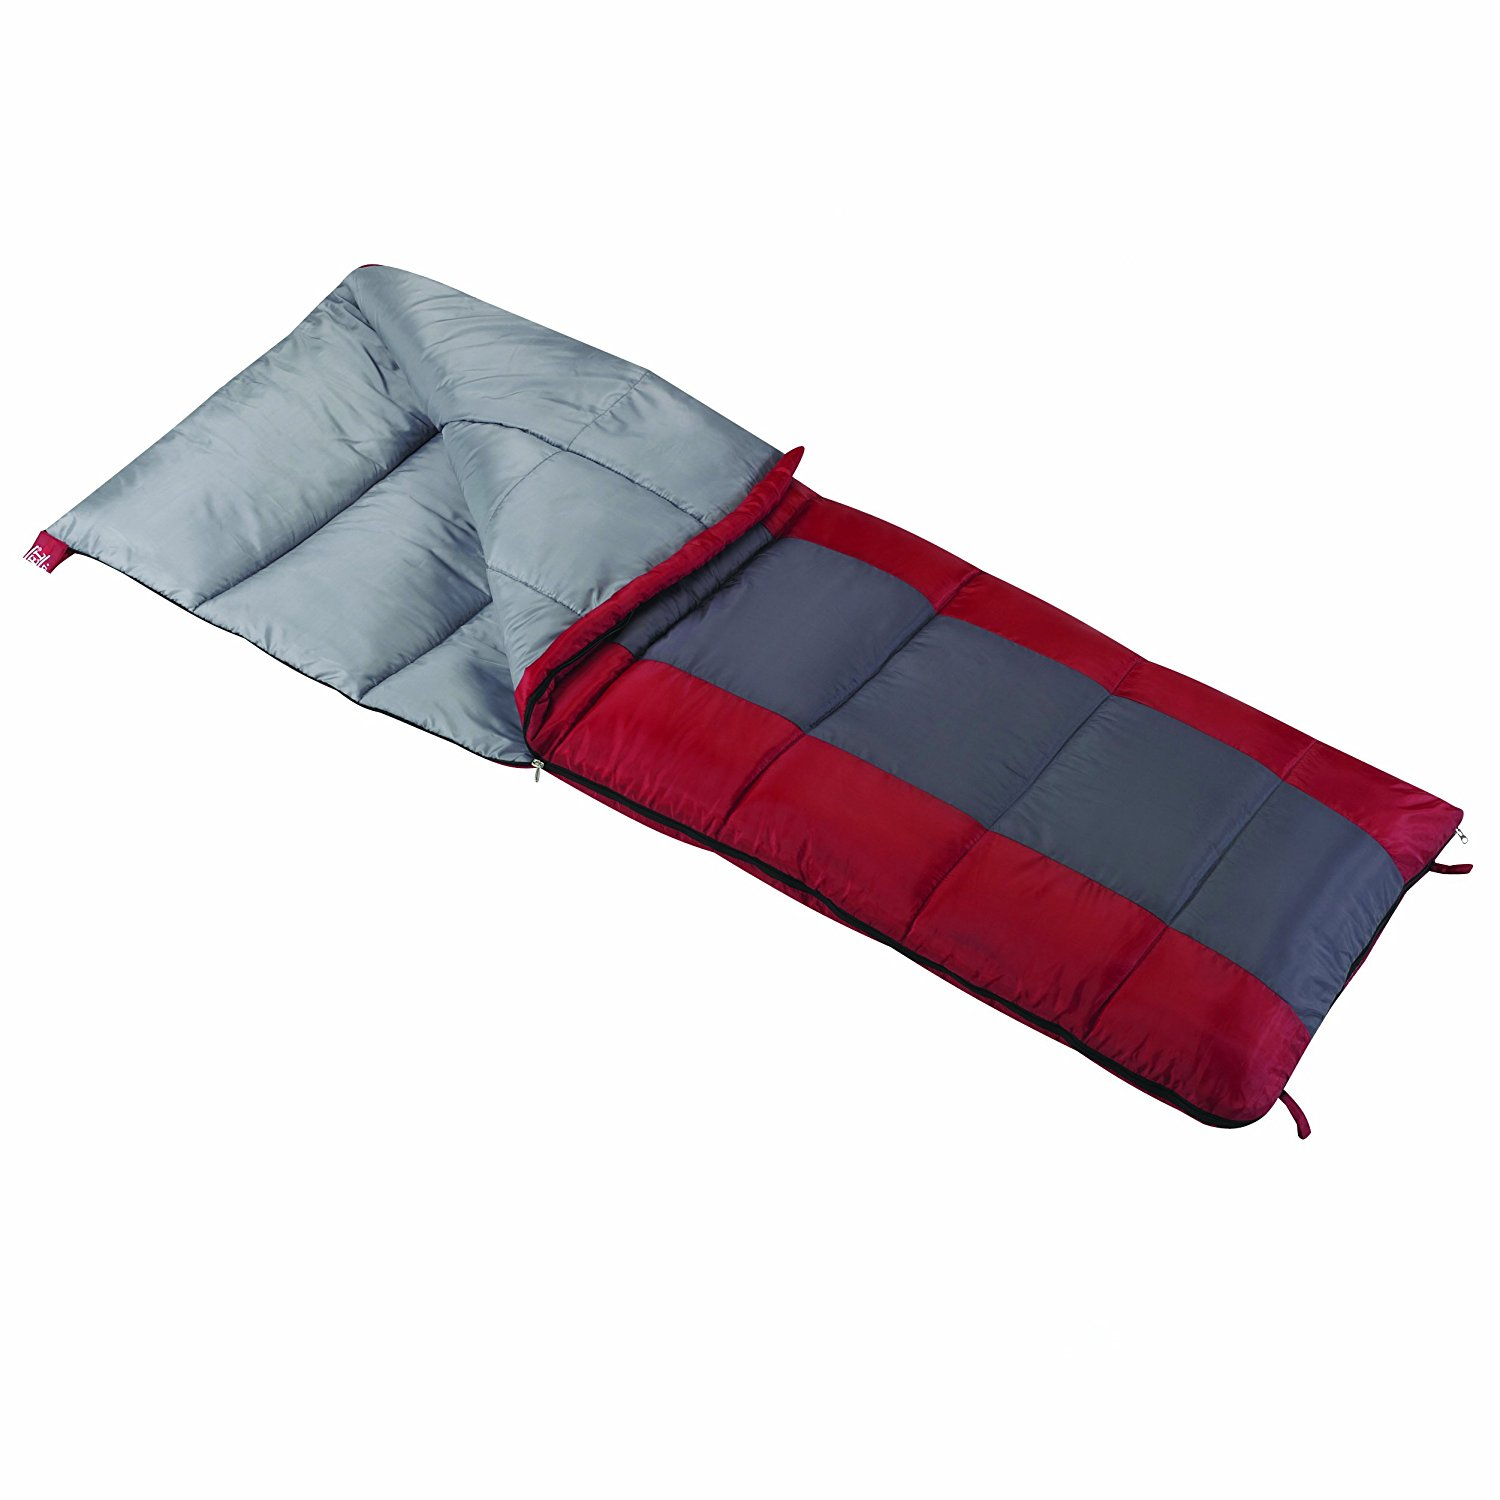 Wenzel Lakeside 40 Degree Sleeping Bag (33 in x 78 in)